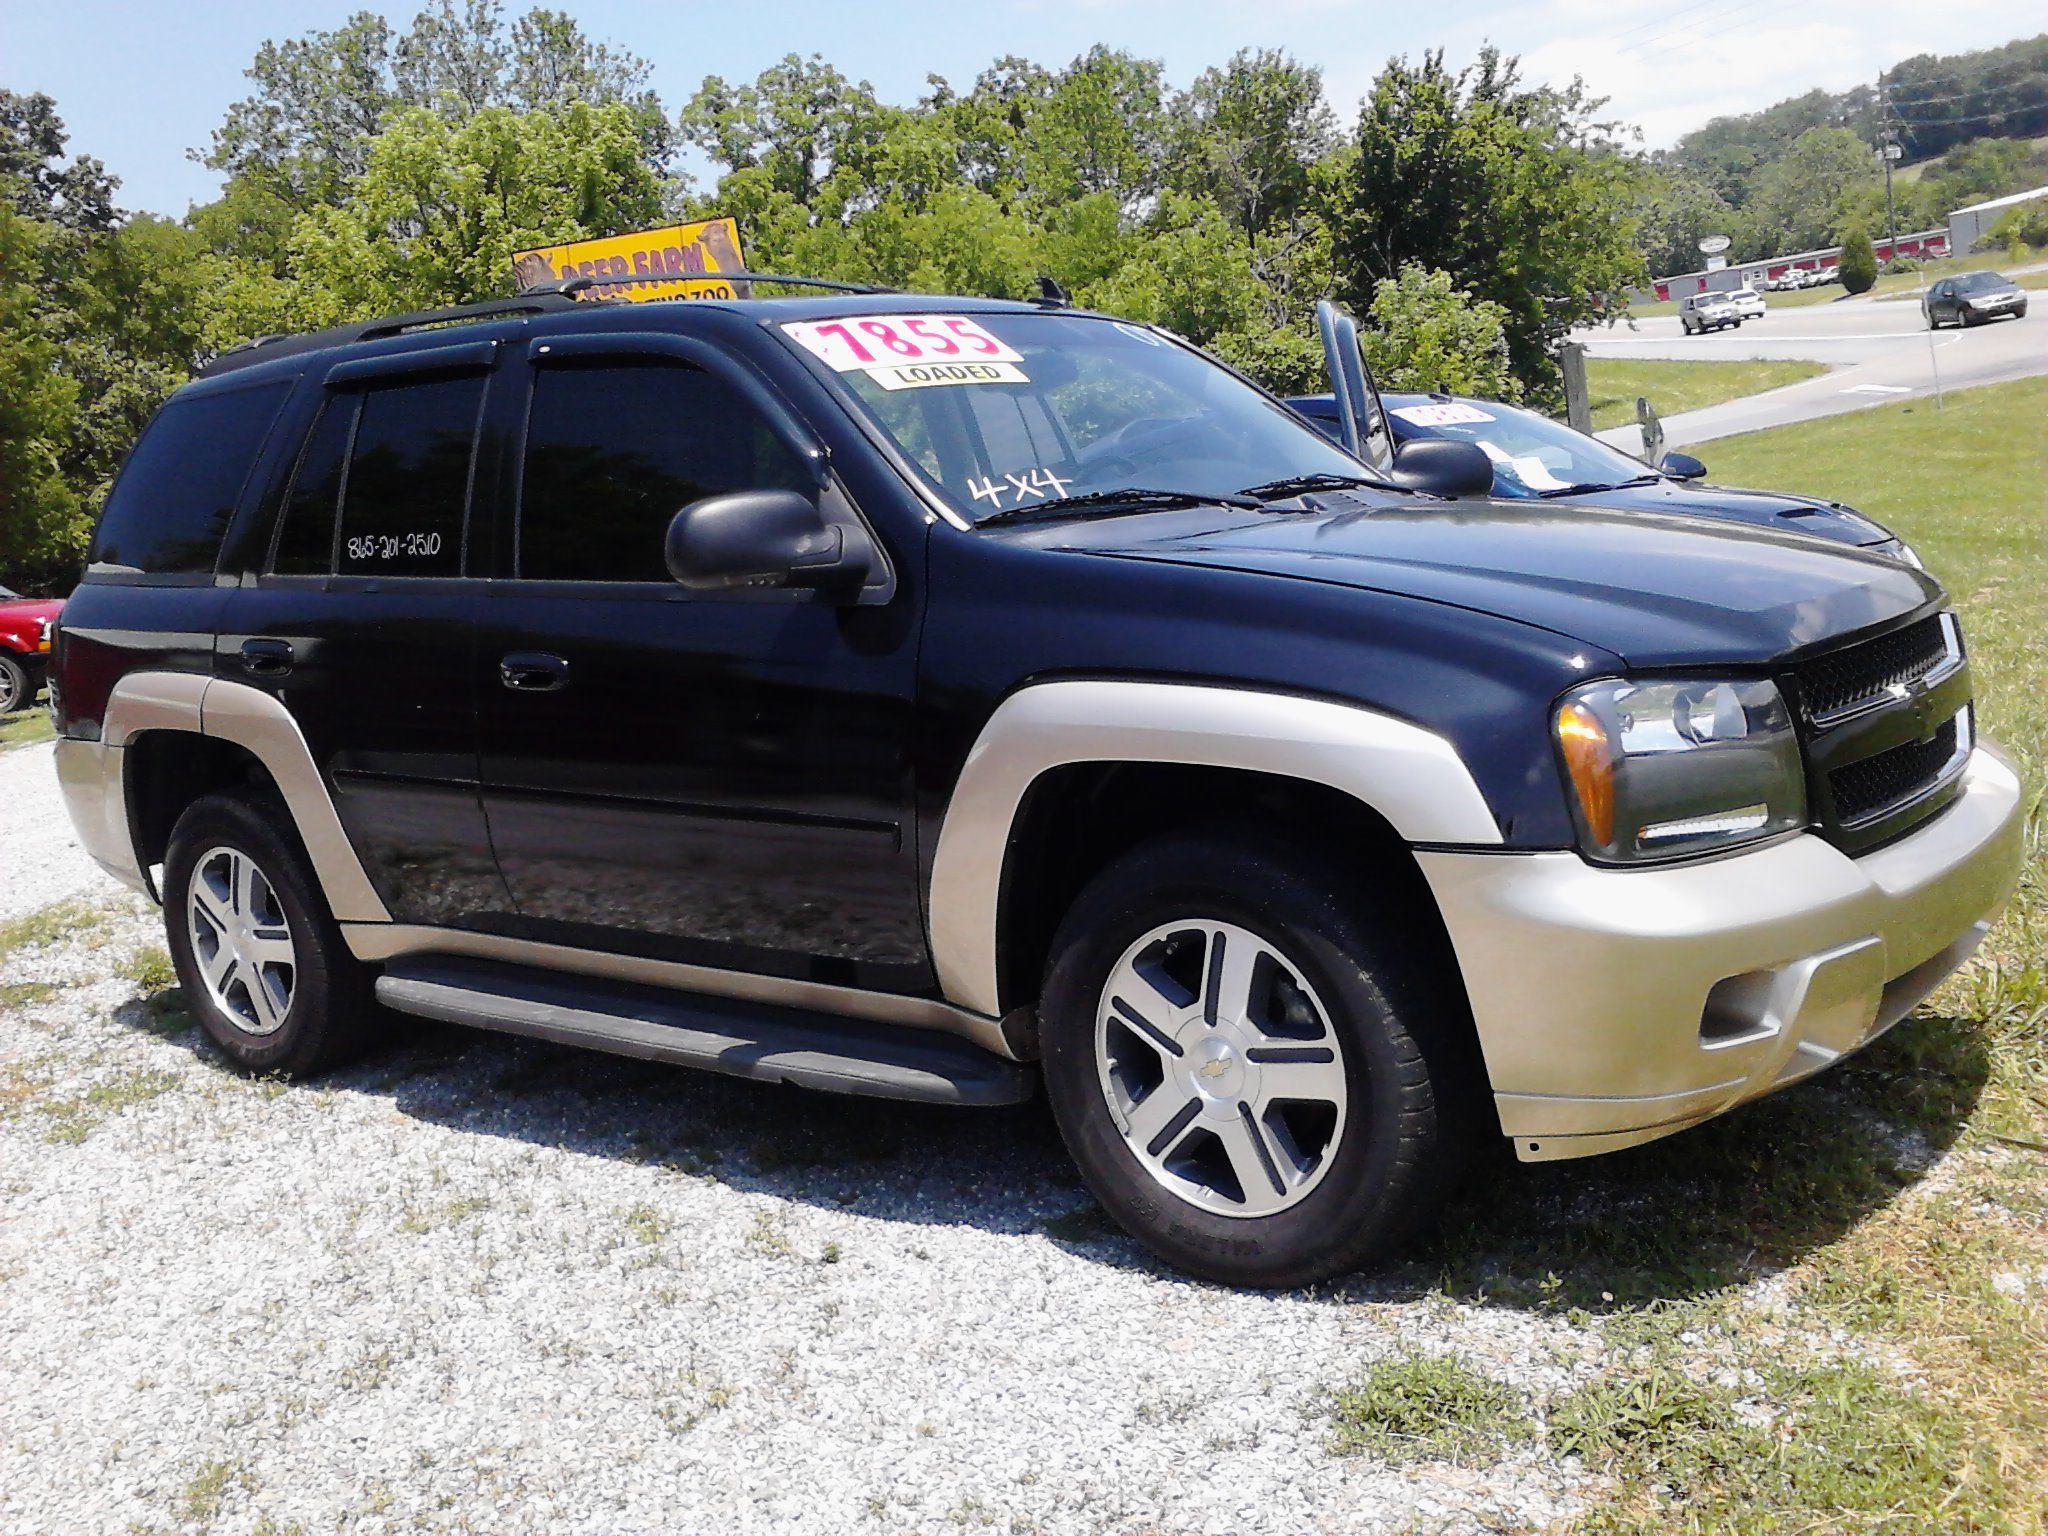 865 201 2510 2007 Chevy Trailblazer Ltz For Sale Or Trade This Is A Really Clean Inside And Custom Chevy Trucks Chevy Trailblazer 2007 Chevy Trailblazer